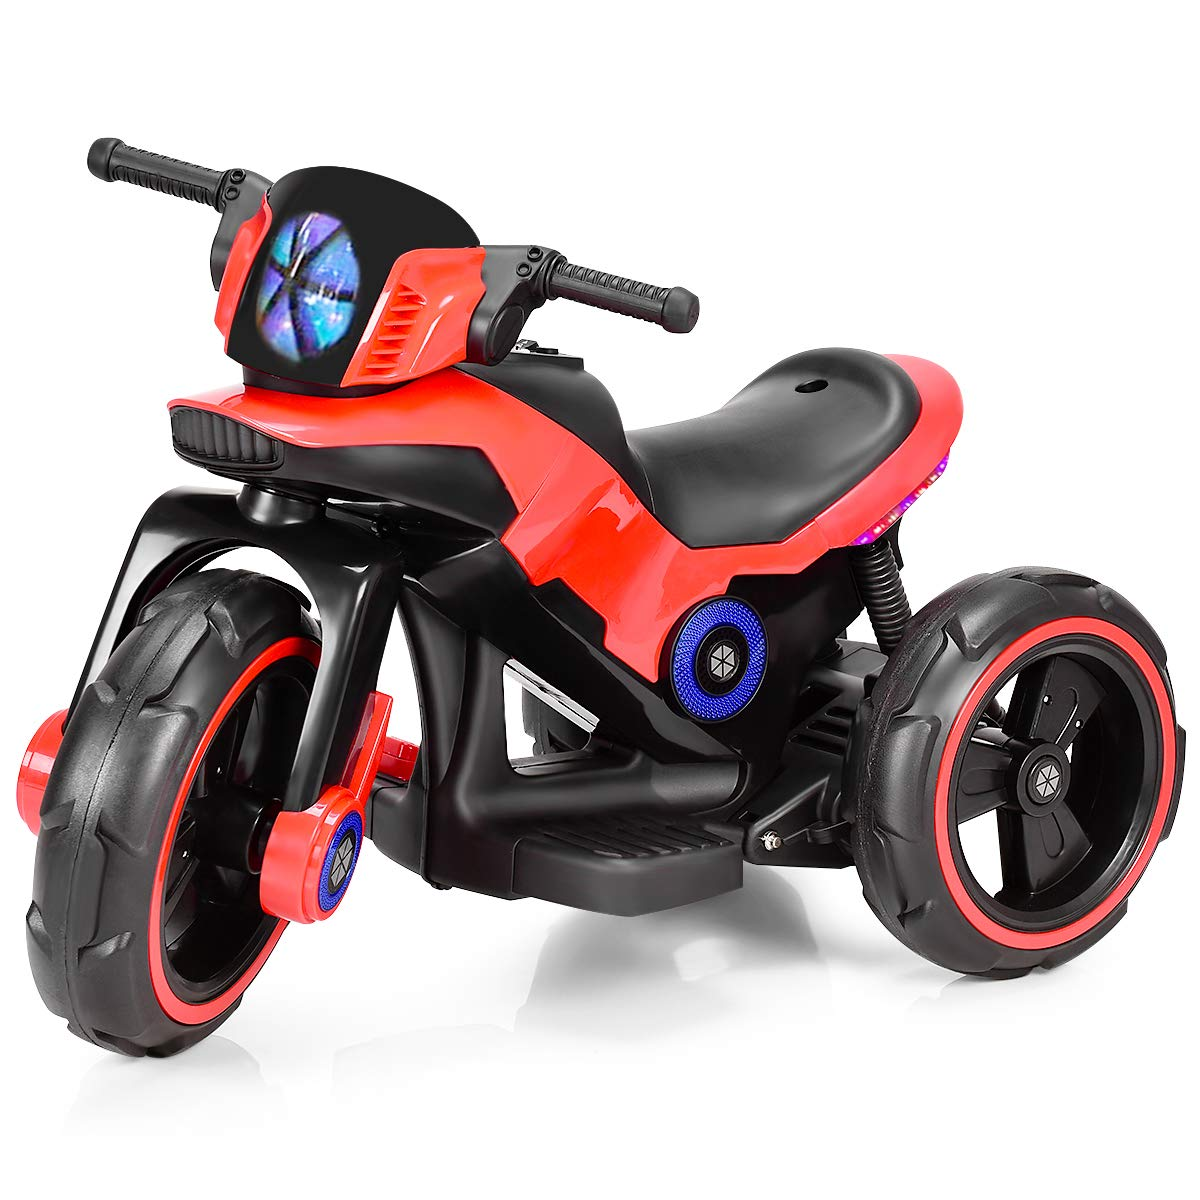 Costzon Kids Motorcycle 6V Bicycle 3 Wheels Battery Powered W/ MP3 for Boys & Girls, Children Electric Ride on